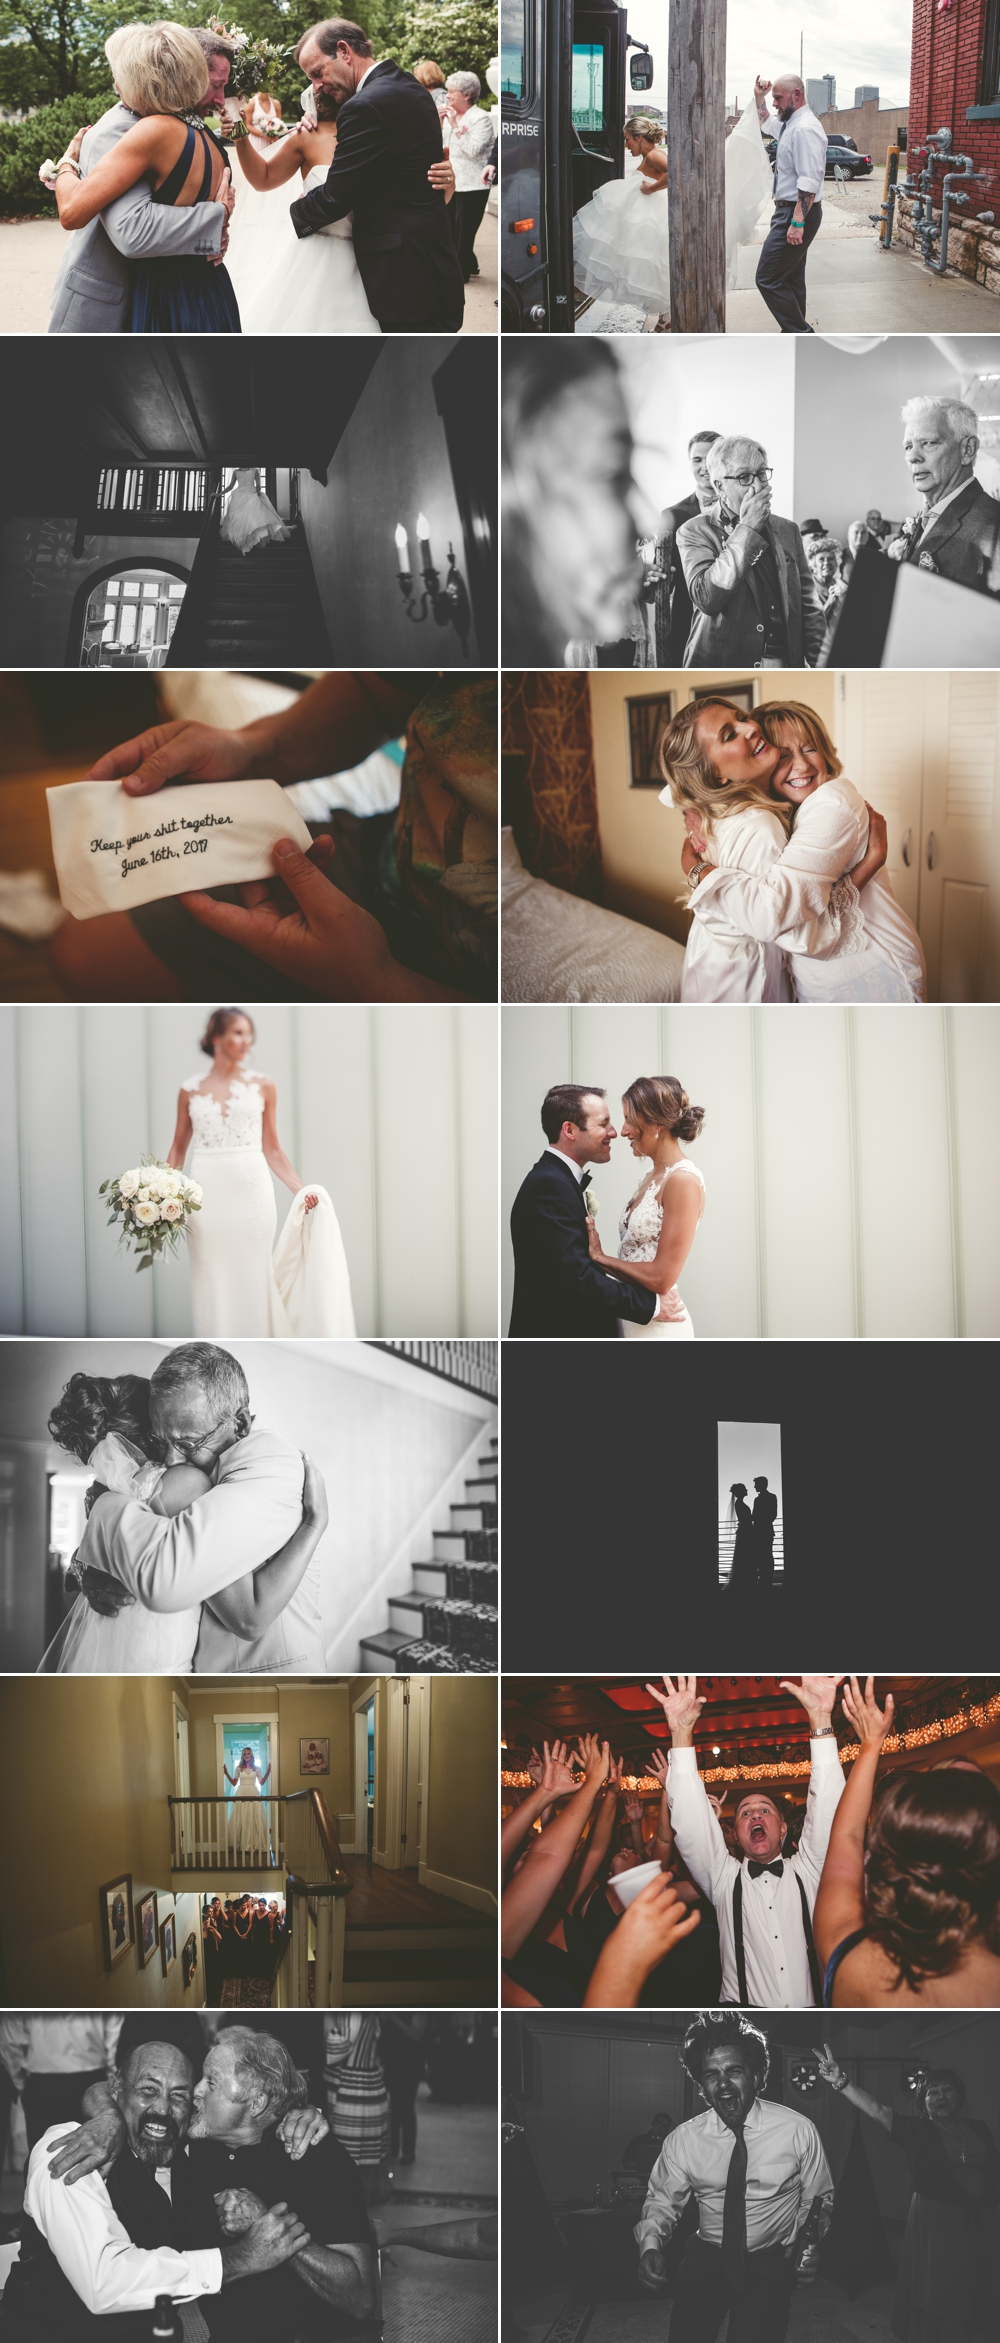 jason_domingues_photography_best_kansas_city_wedding_photographer_kc_weddings_0002.JPG